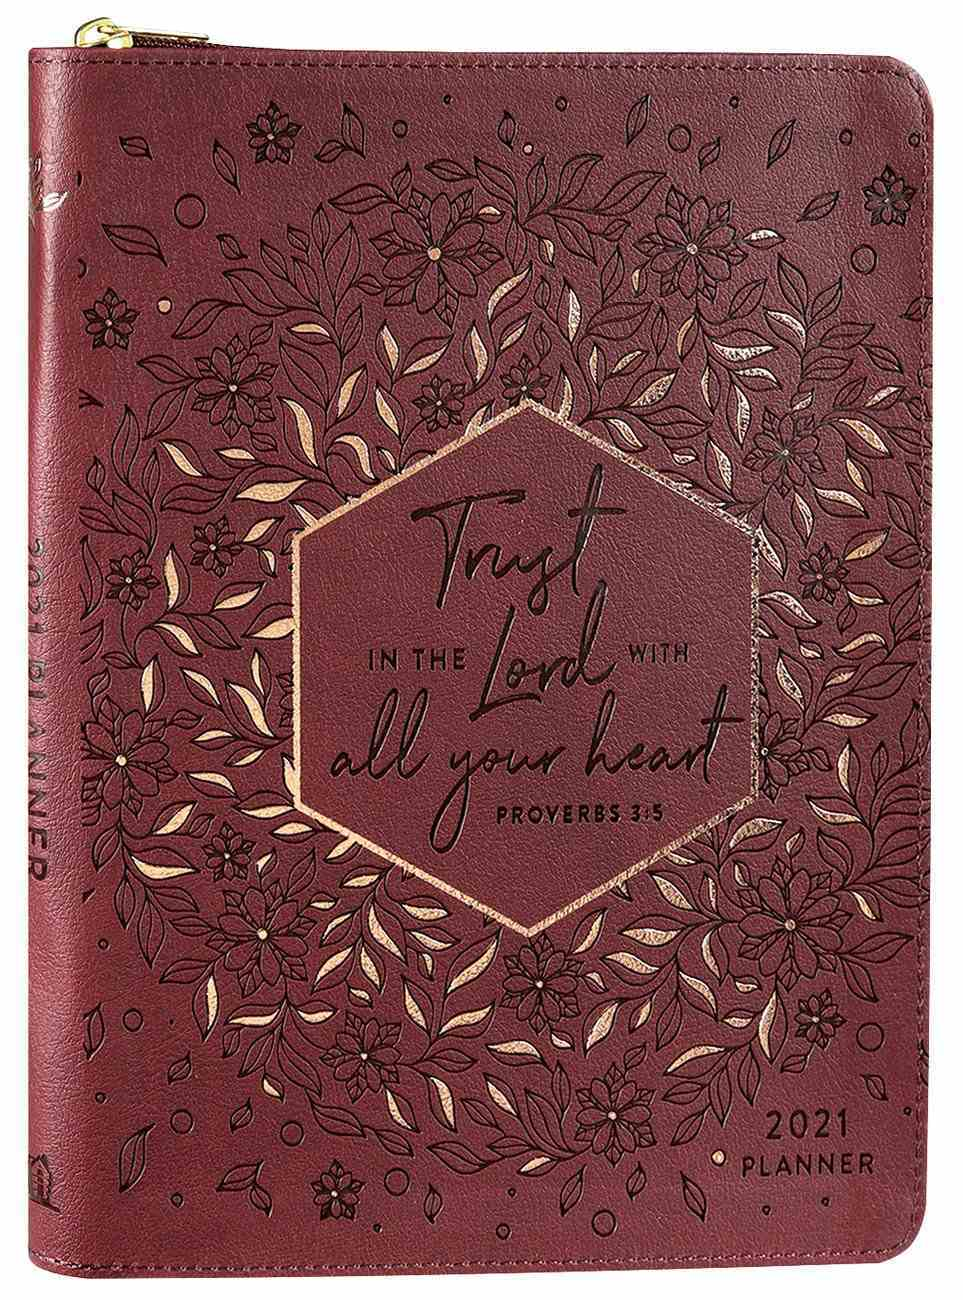 2021 16-Month Diary/Planner: Trust in the Lord With All Your Heart (Zippered/Burgundy) (Prov 3:5) Imitation Leather